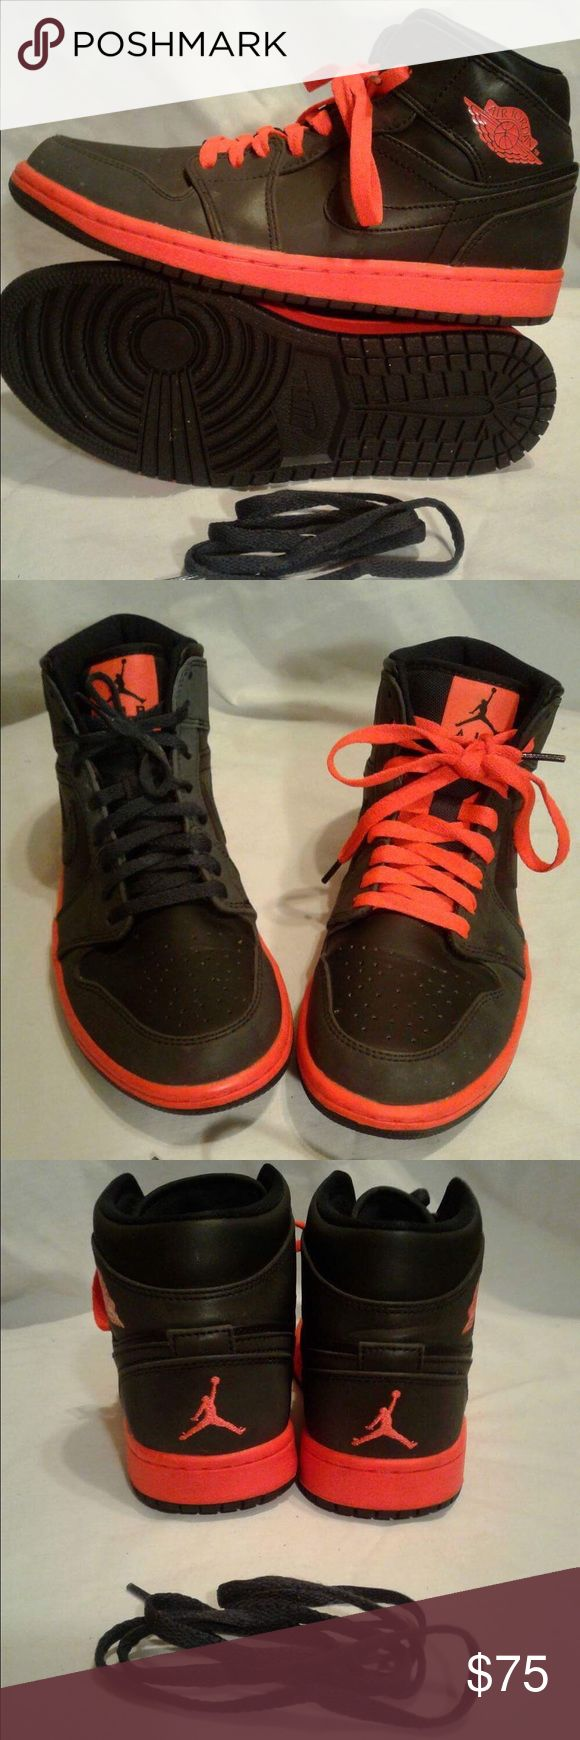 Men's Nike Air Jordan infrared Flight Shoes Men's Size 8 Air Jordan Flight Infrared Shoes High Tops Flight Nike preowned no major flaws normal preowned condition black and infrared Nike Shoes Sneakers